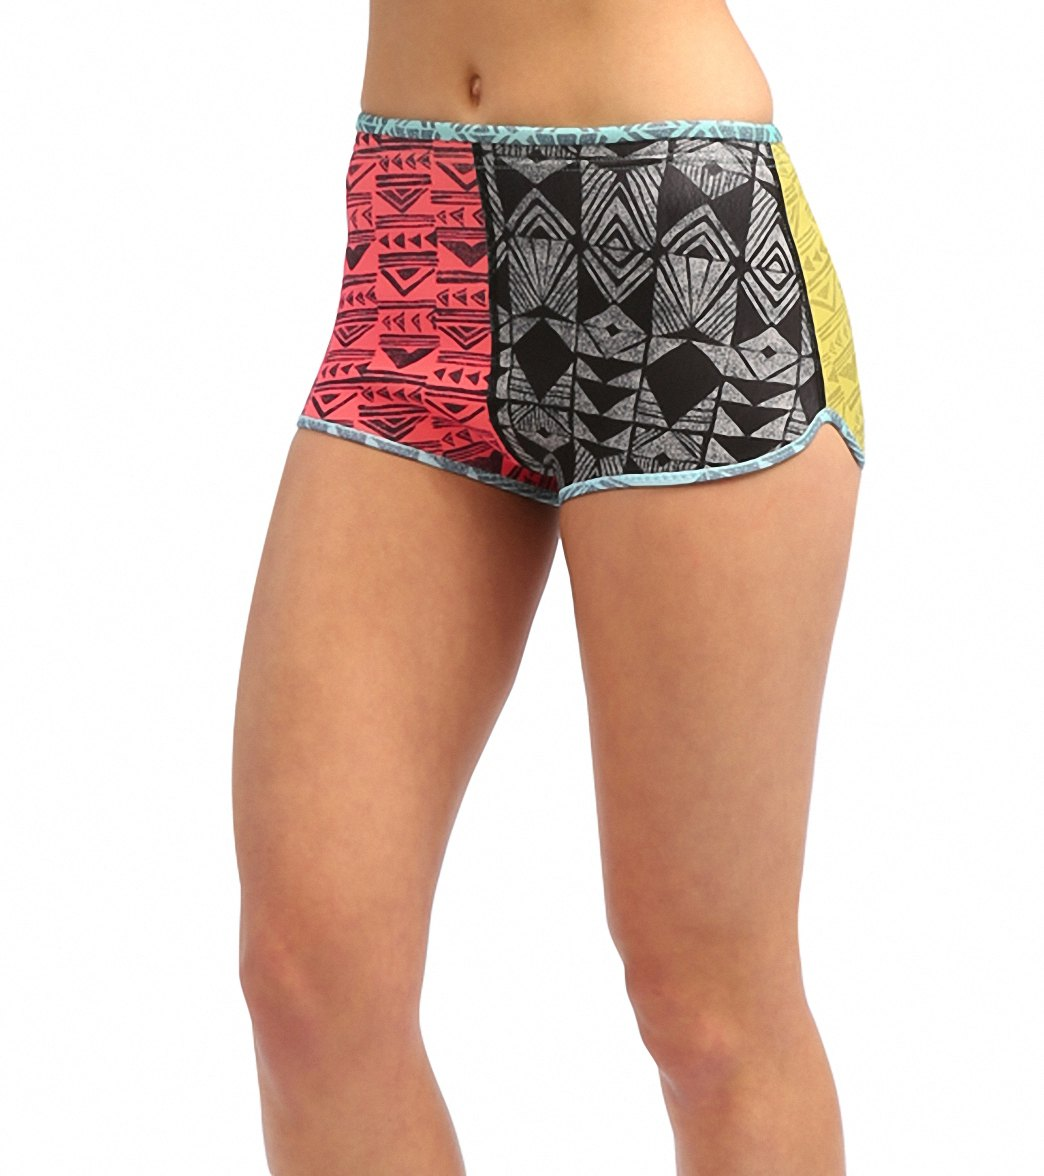 Billabong Women s Vintage Wetsuit Short at SwimOutlet.com 8882f7cb8